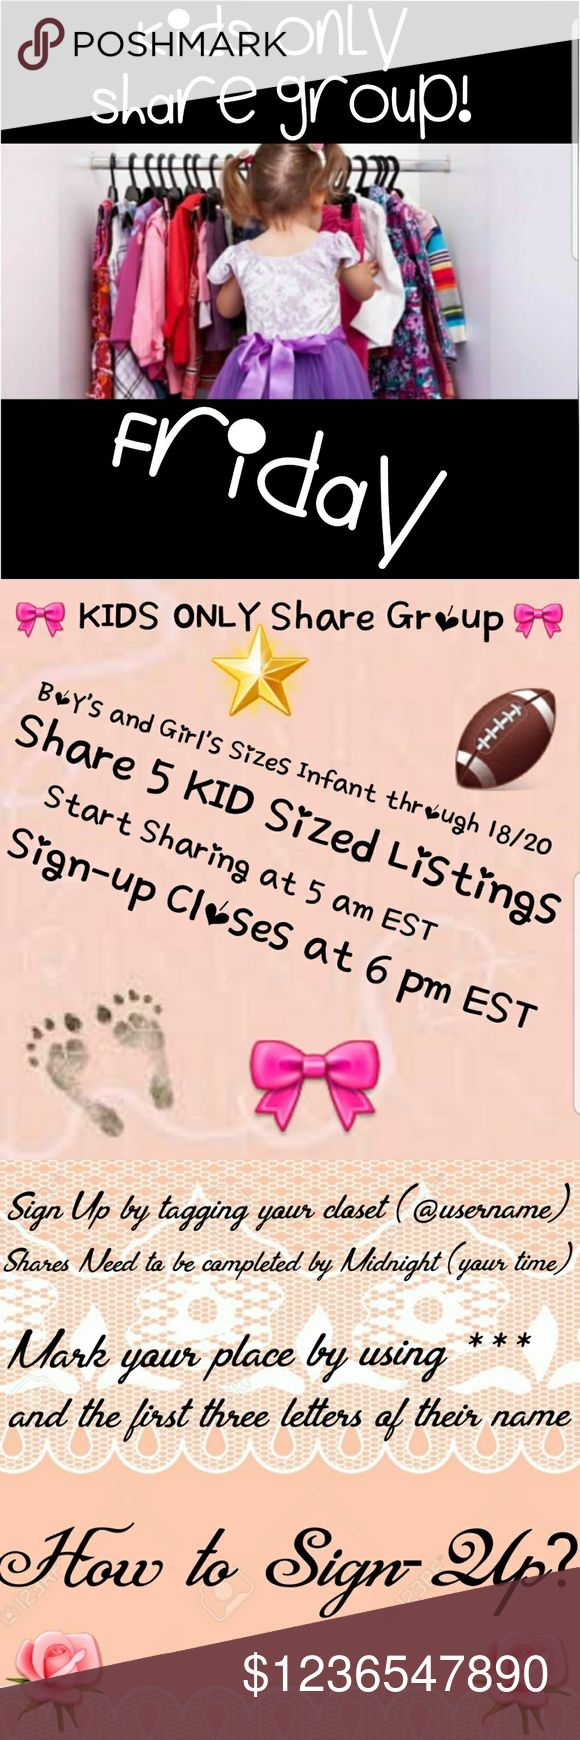 🎀 KIDS ONLY 🎀 FRIDAY 3/8 🏈 SIGN UP NOW 🏈 🎀 KIDS ONLY Share Group 🎀  Boy's and Girl's Sizes Infant through 18/20  🏈 Sign Up by tagging your closet (@username)  🏈Must sign up before 6pm EST ... 6pm Group sign up is closed!   🎀 Please Like - Share Listing -  Tag your PFFs  🏈Share 5 KID Sized Listings from each closet  🎀Have your shares completed and sign out prior to Midnight (your time)  🏈You may start sharing as soon as the first person signs up...YOU DO NOT NEED TO WAIT UNTIL…